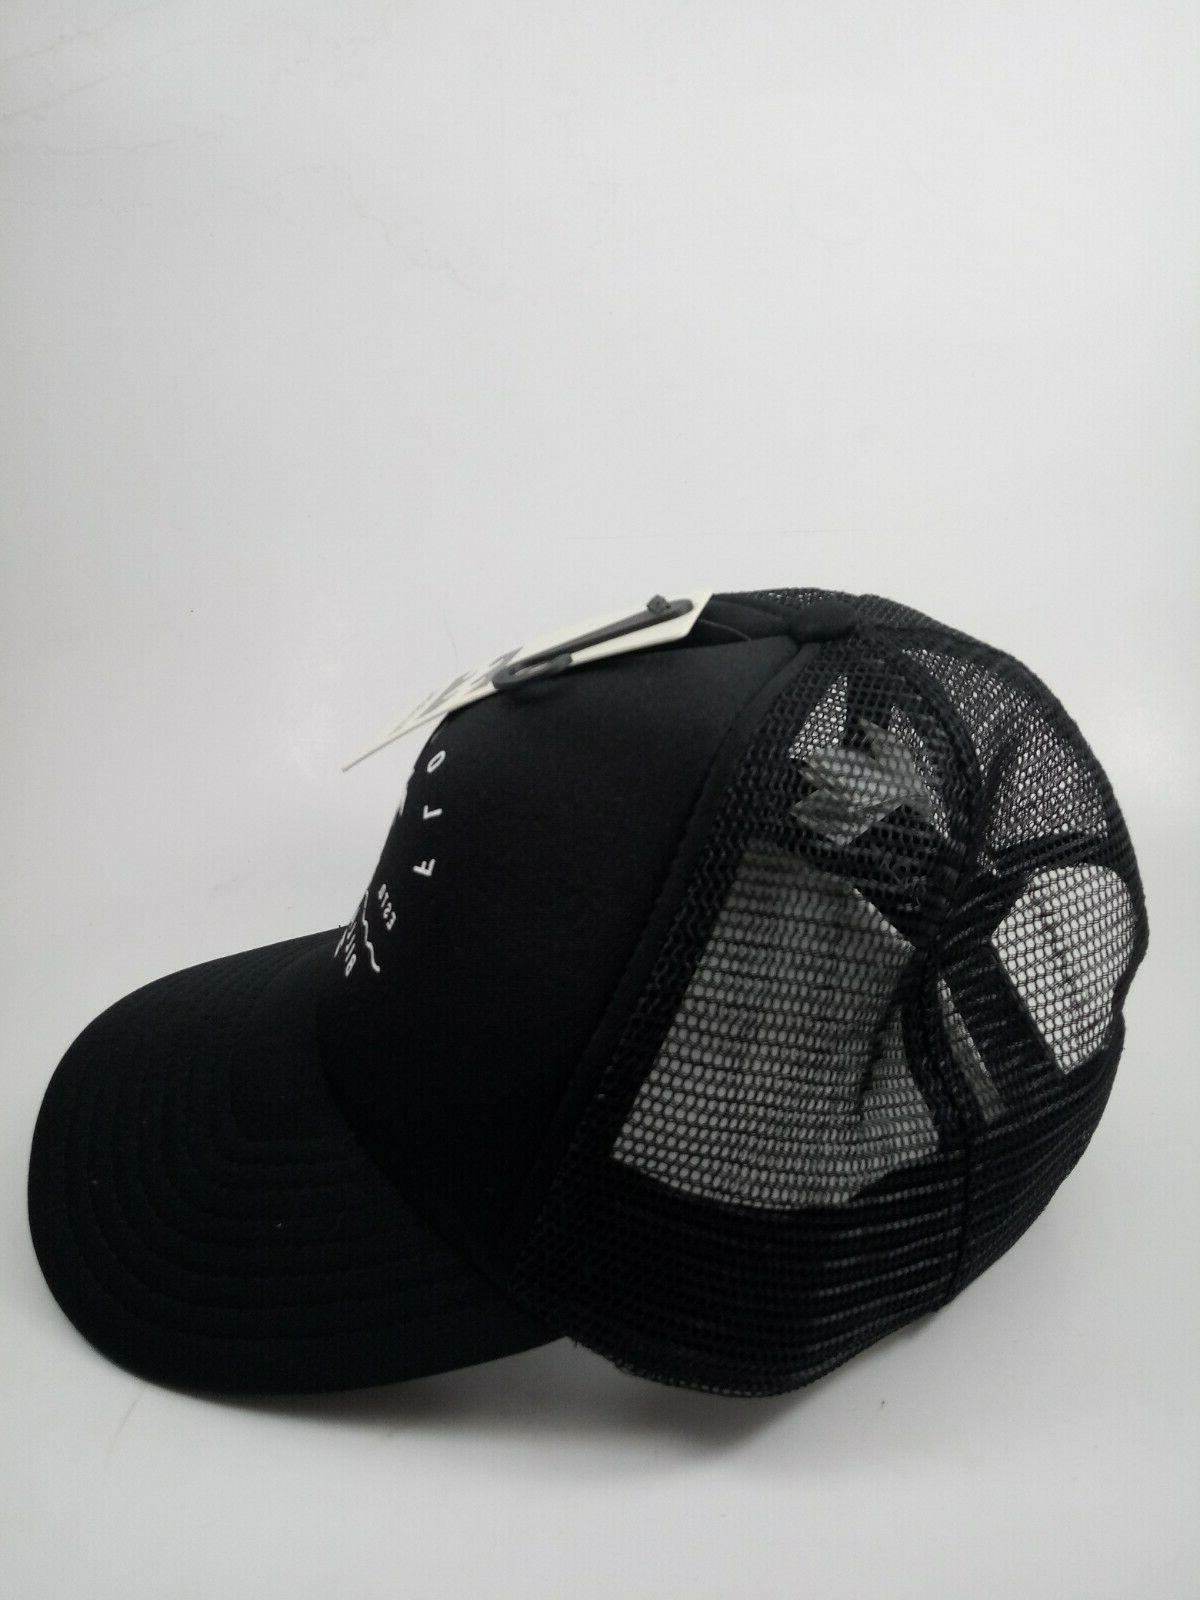 Billabong AI Trucker Hat Black New with Tags